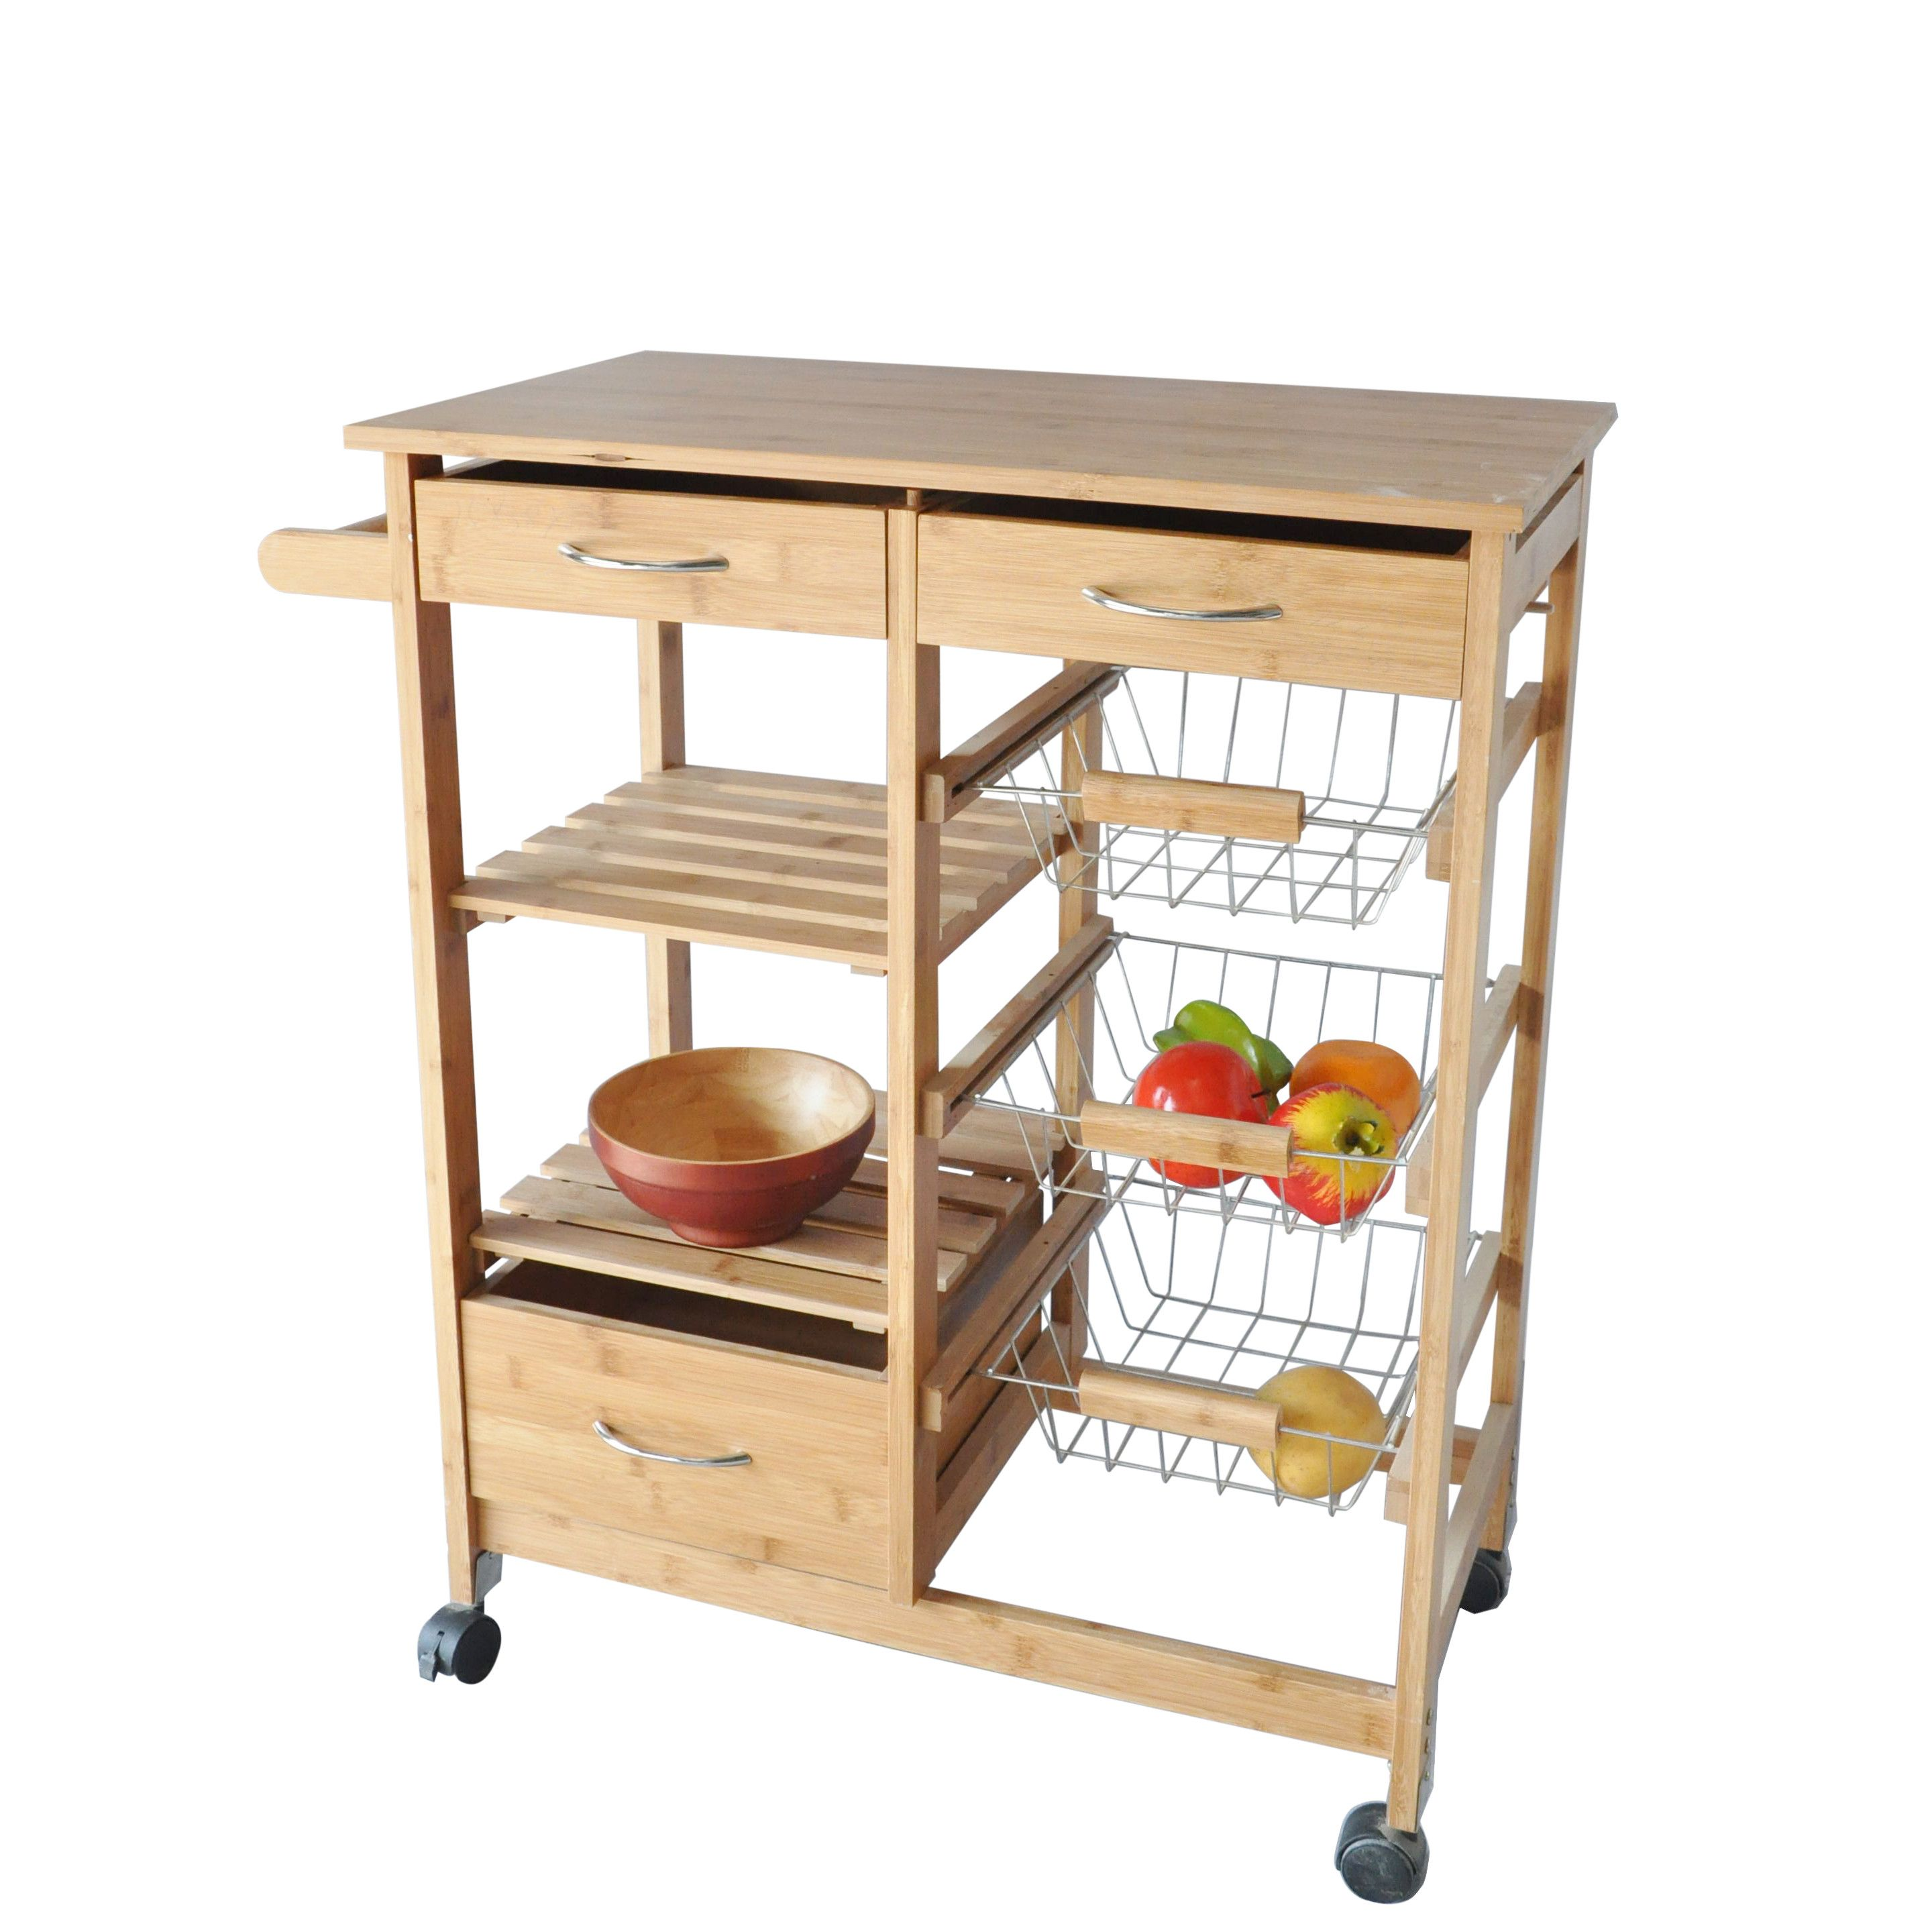 Add Much Needed Storage And Prep Space To Your Kitchen With This Versatile  Cart, Perfect For Crafting Charcuterie Boards And Stowing Serveware.